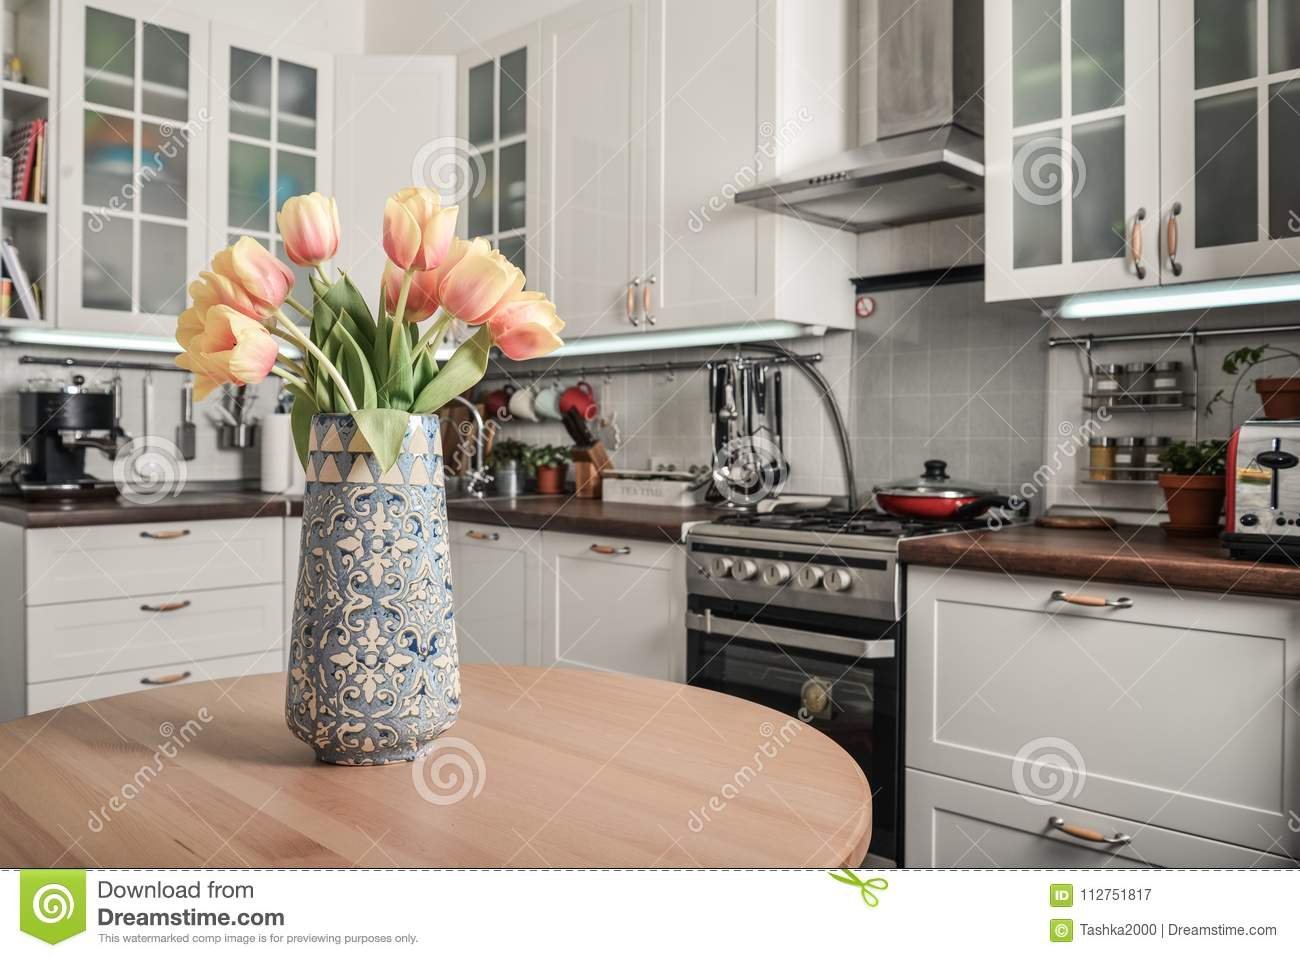 Kitchen Bouquet Bouquet Of Tulips In Interior Of The Kitchen Stock Image Image